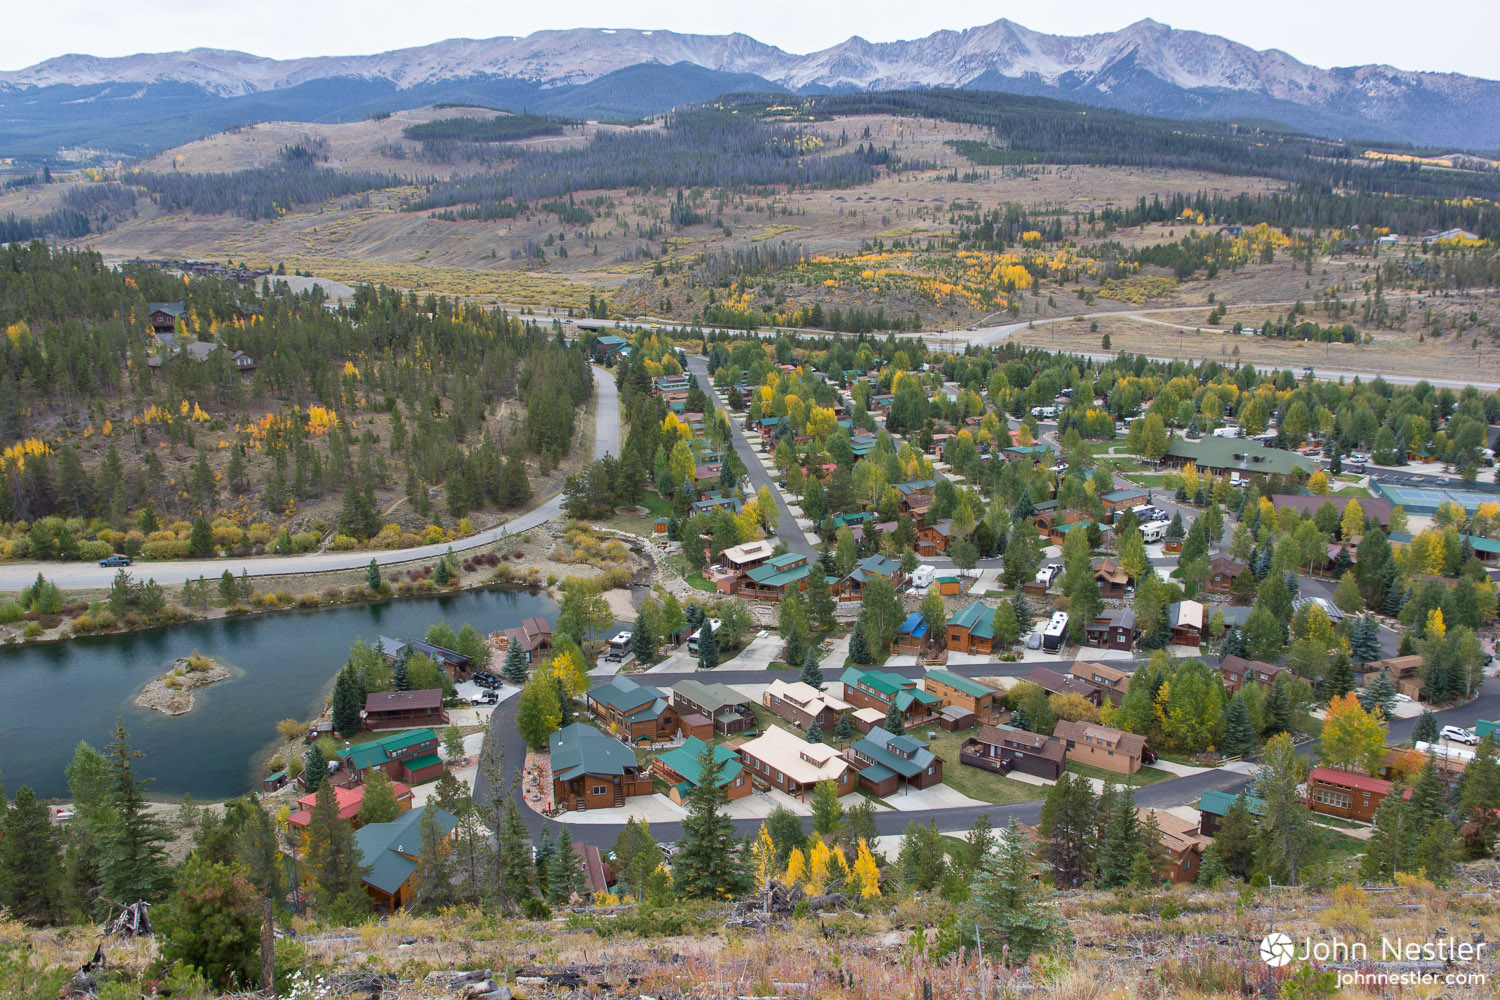 View of the outskirts of Breckenridge while descending from the Colorado Trail. Development like this is a stark contrast from the scenery of the trail, but enables convenient resupply options.